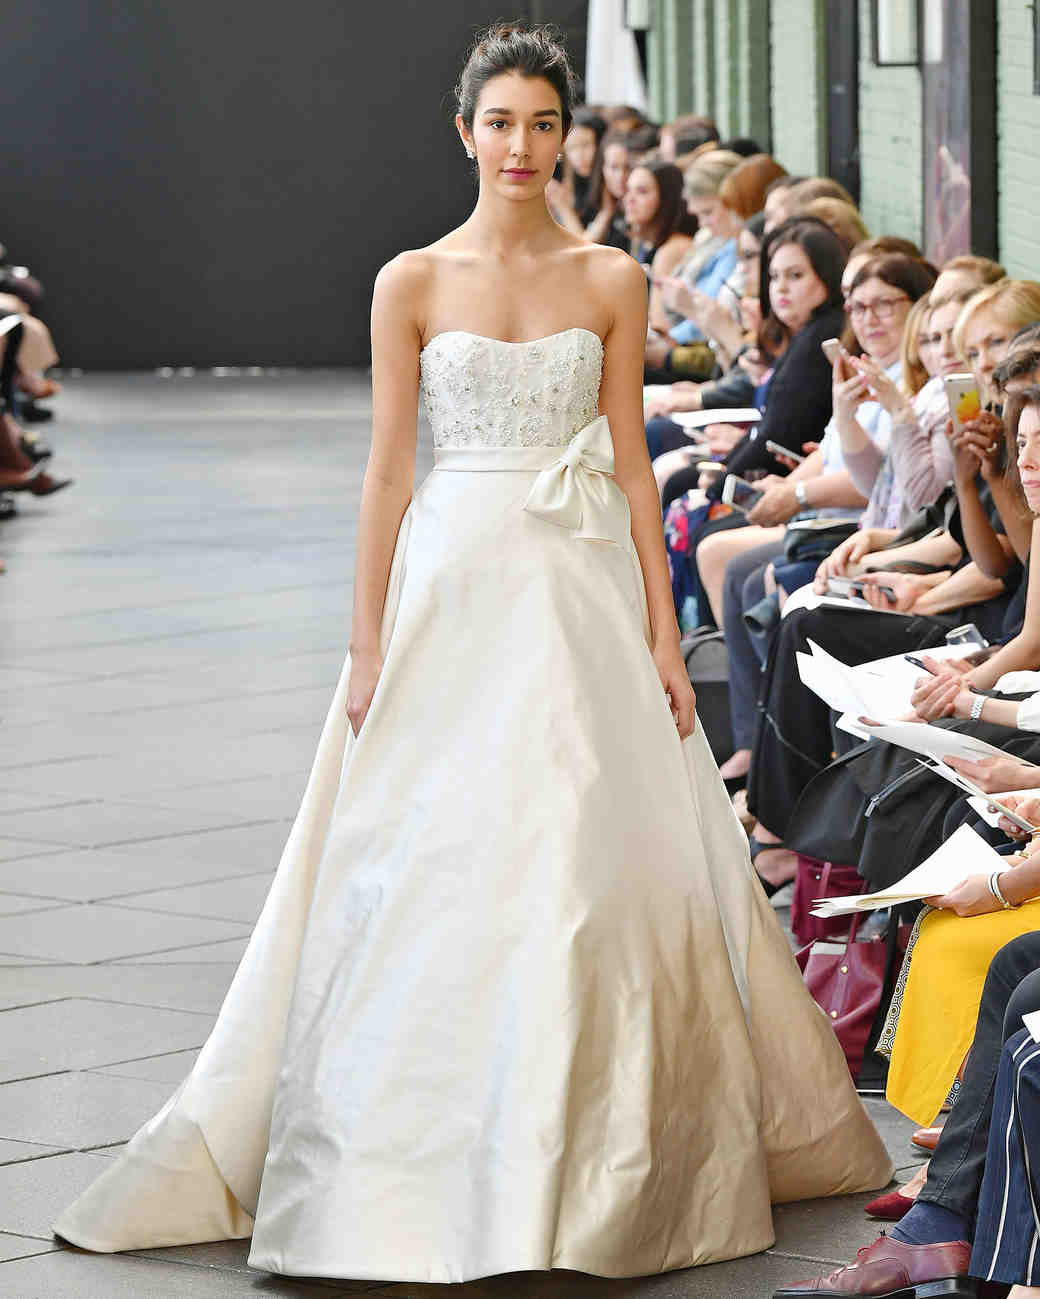 nouvelle amsale wedding dress spring 2019 strapless with bow on belt